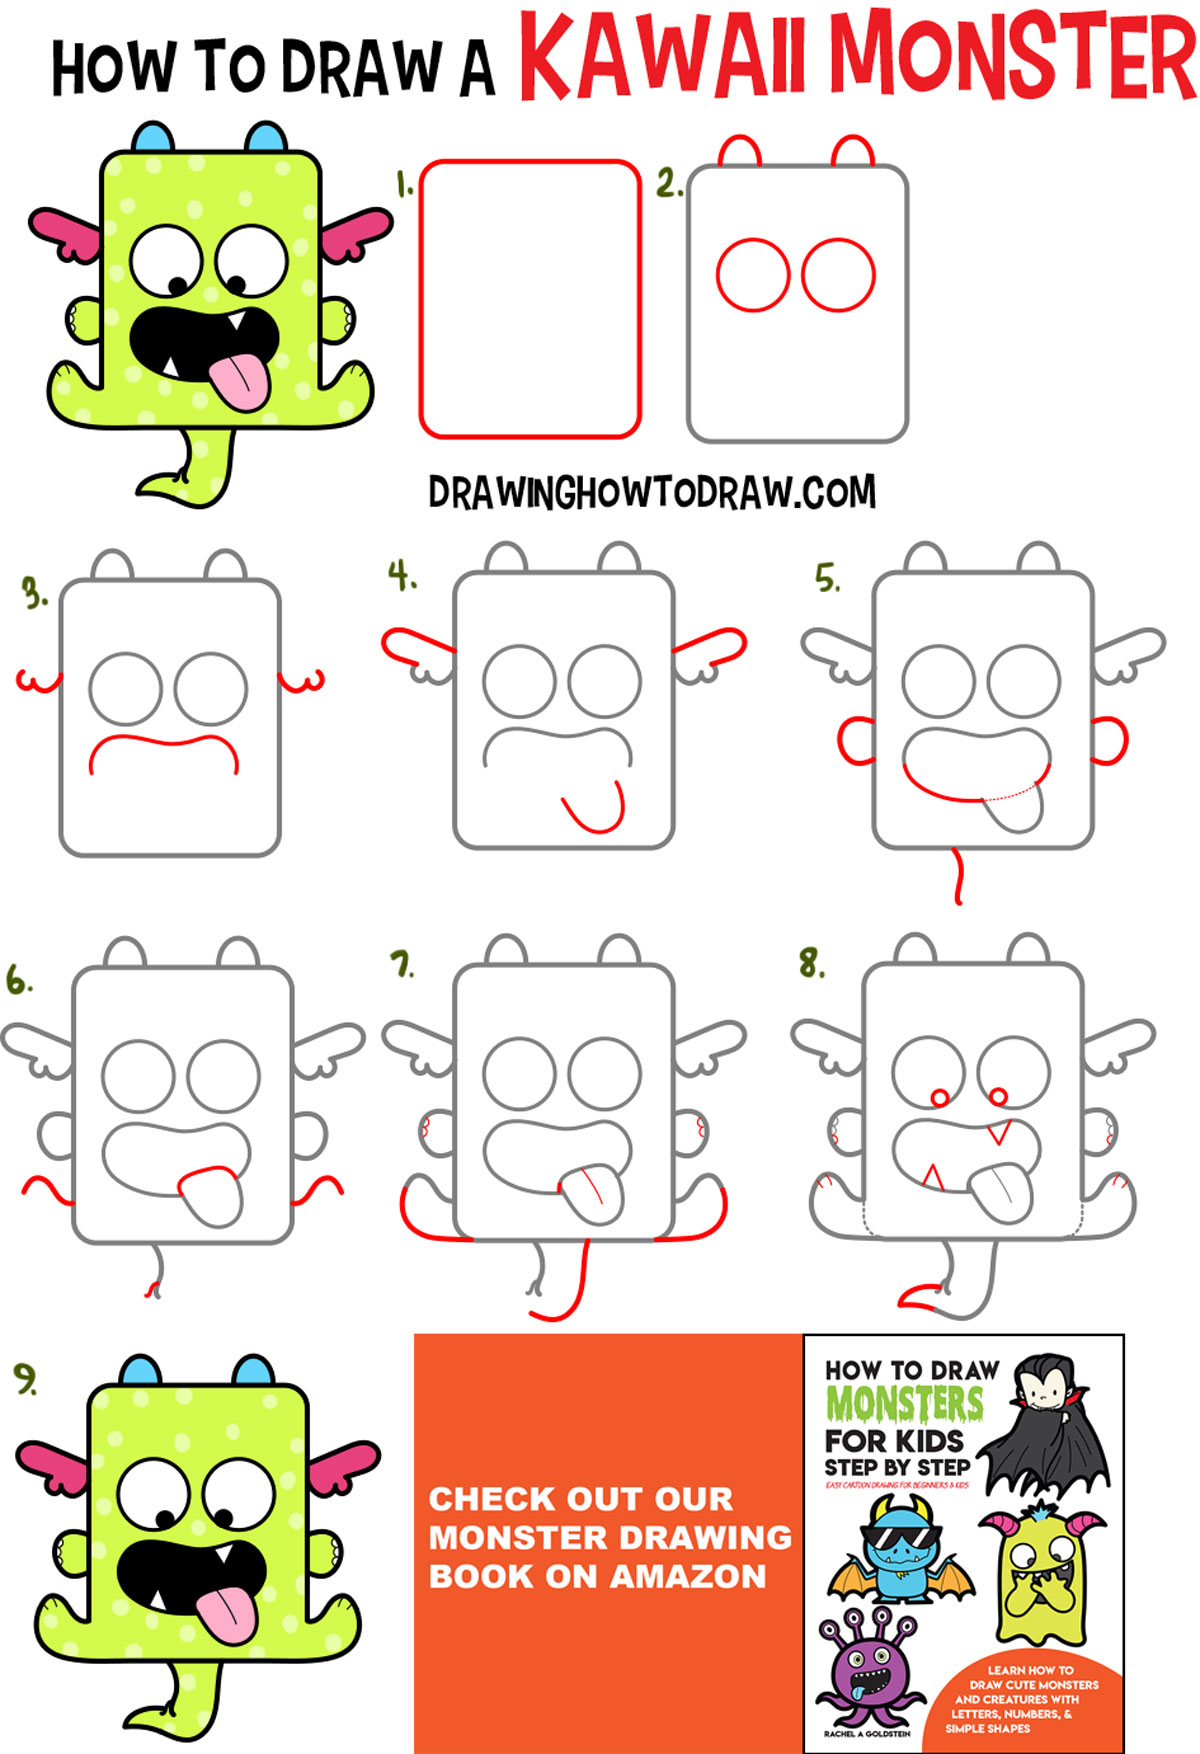 Learn How to Draw a Cute Kawaii Monster with Easy Step by Step Drawing Tutorial for Kids